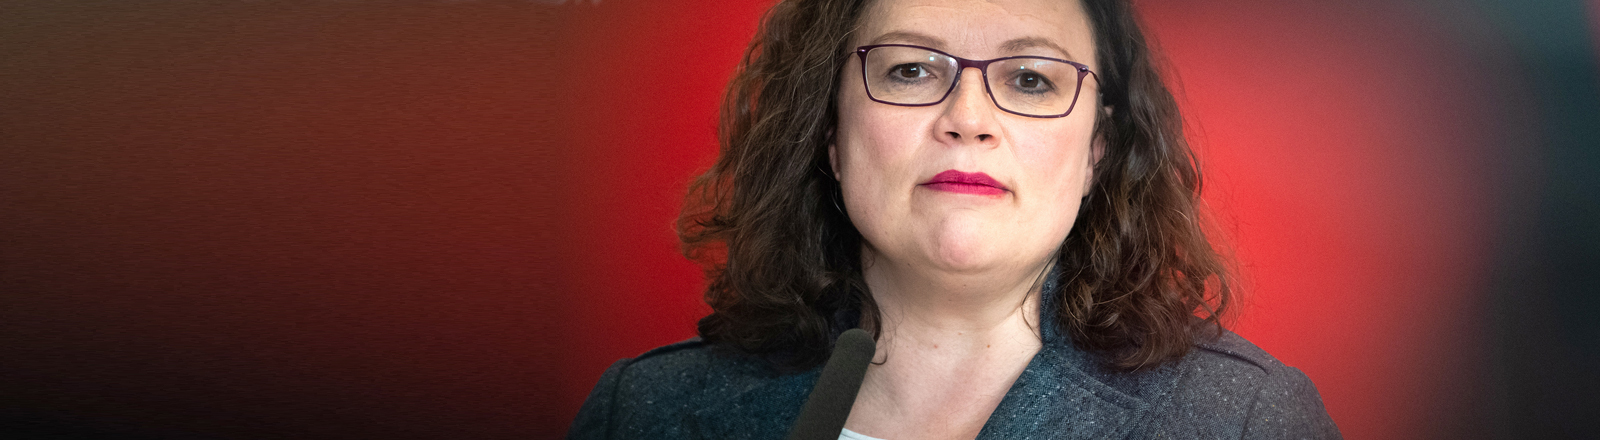 Andrea Nahles guckt.